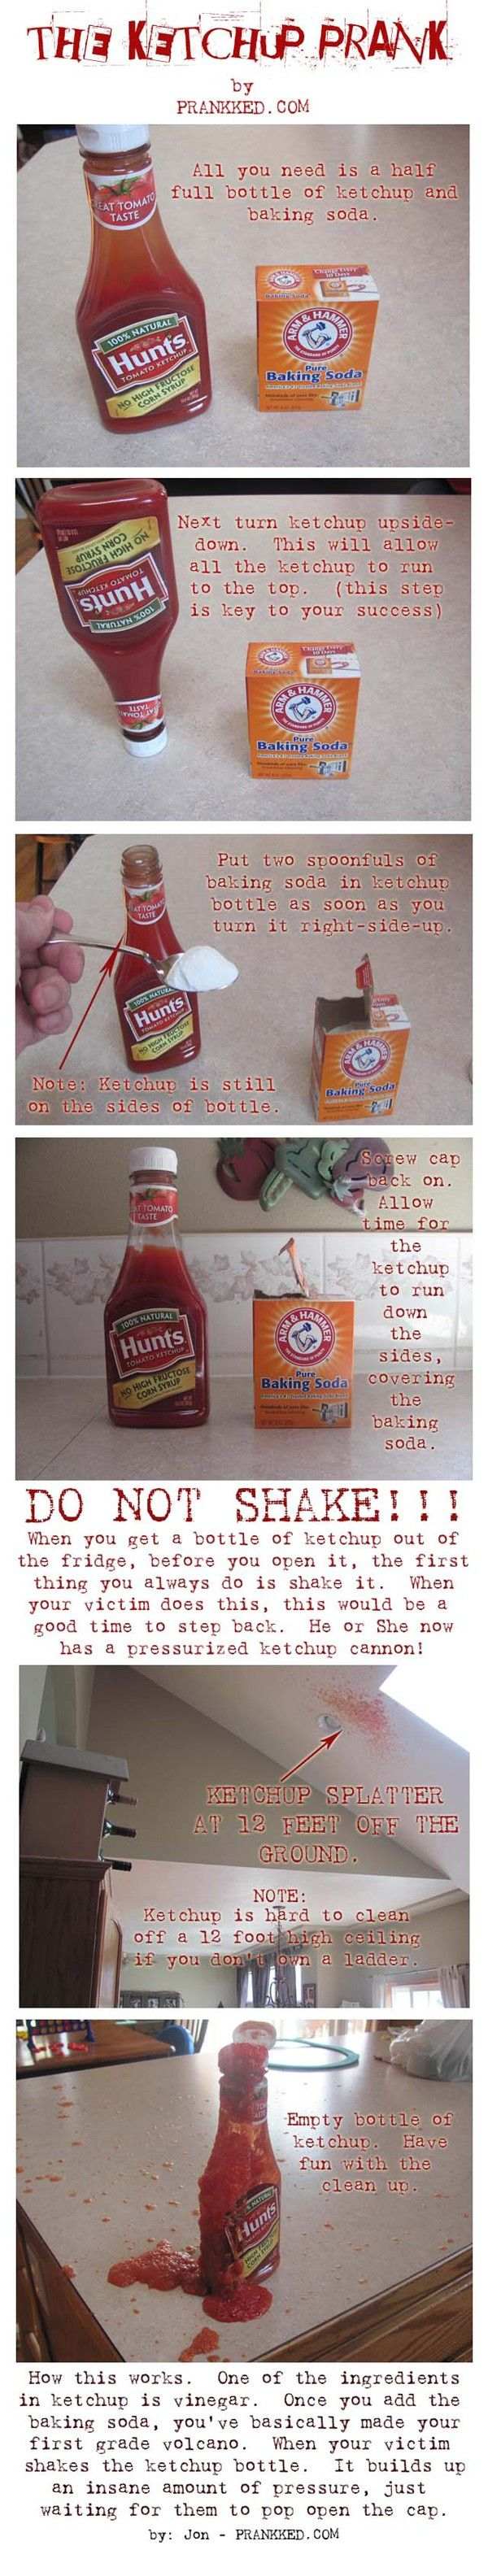 Ketchup Prank. ❤️ oh so funny but idk if I could do this in my house it'd be such a mess!!